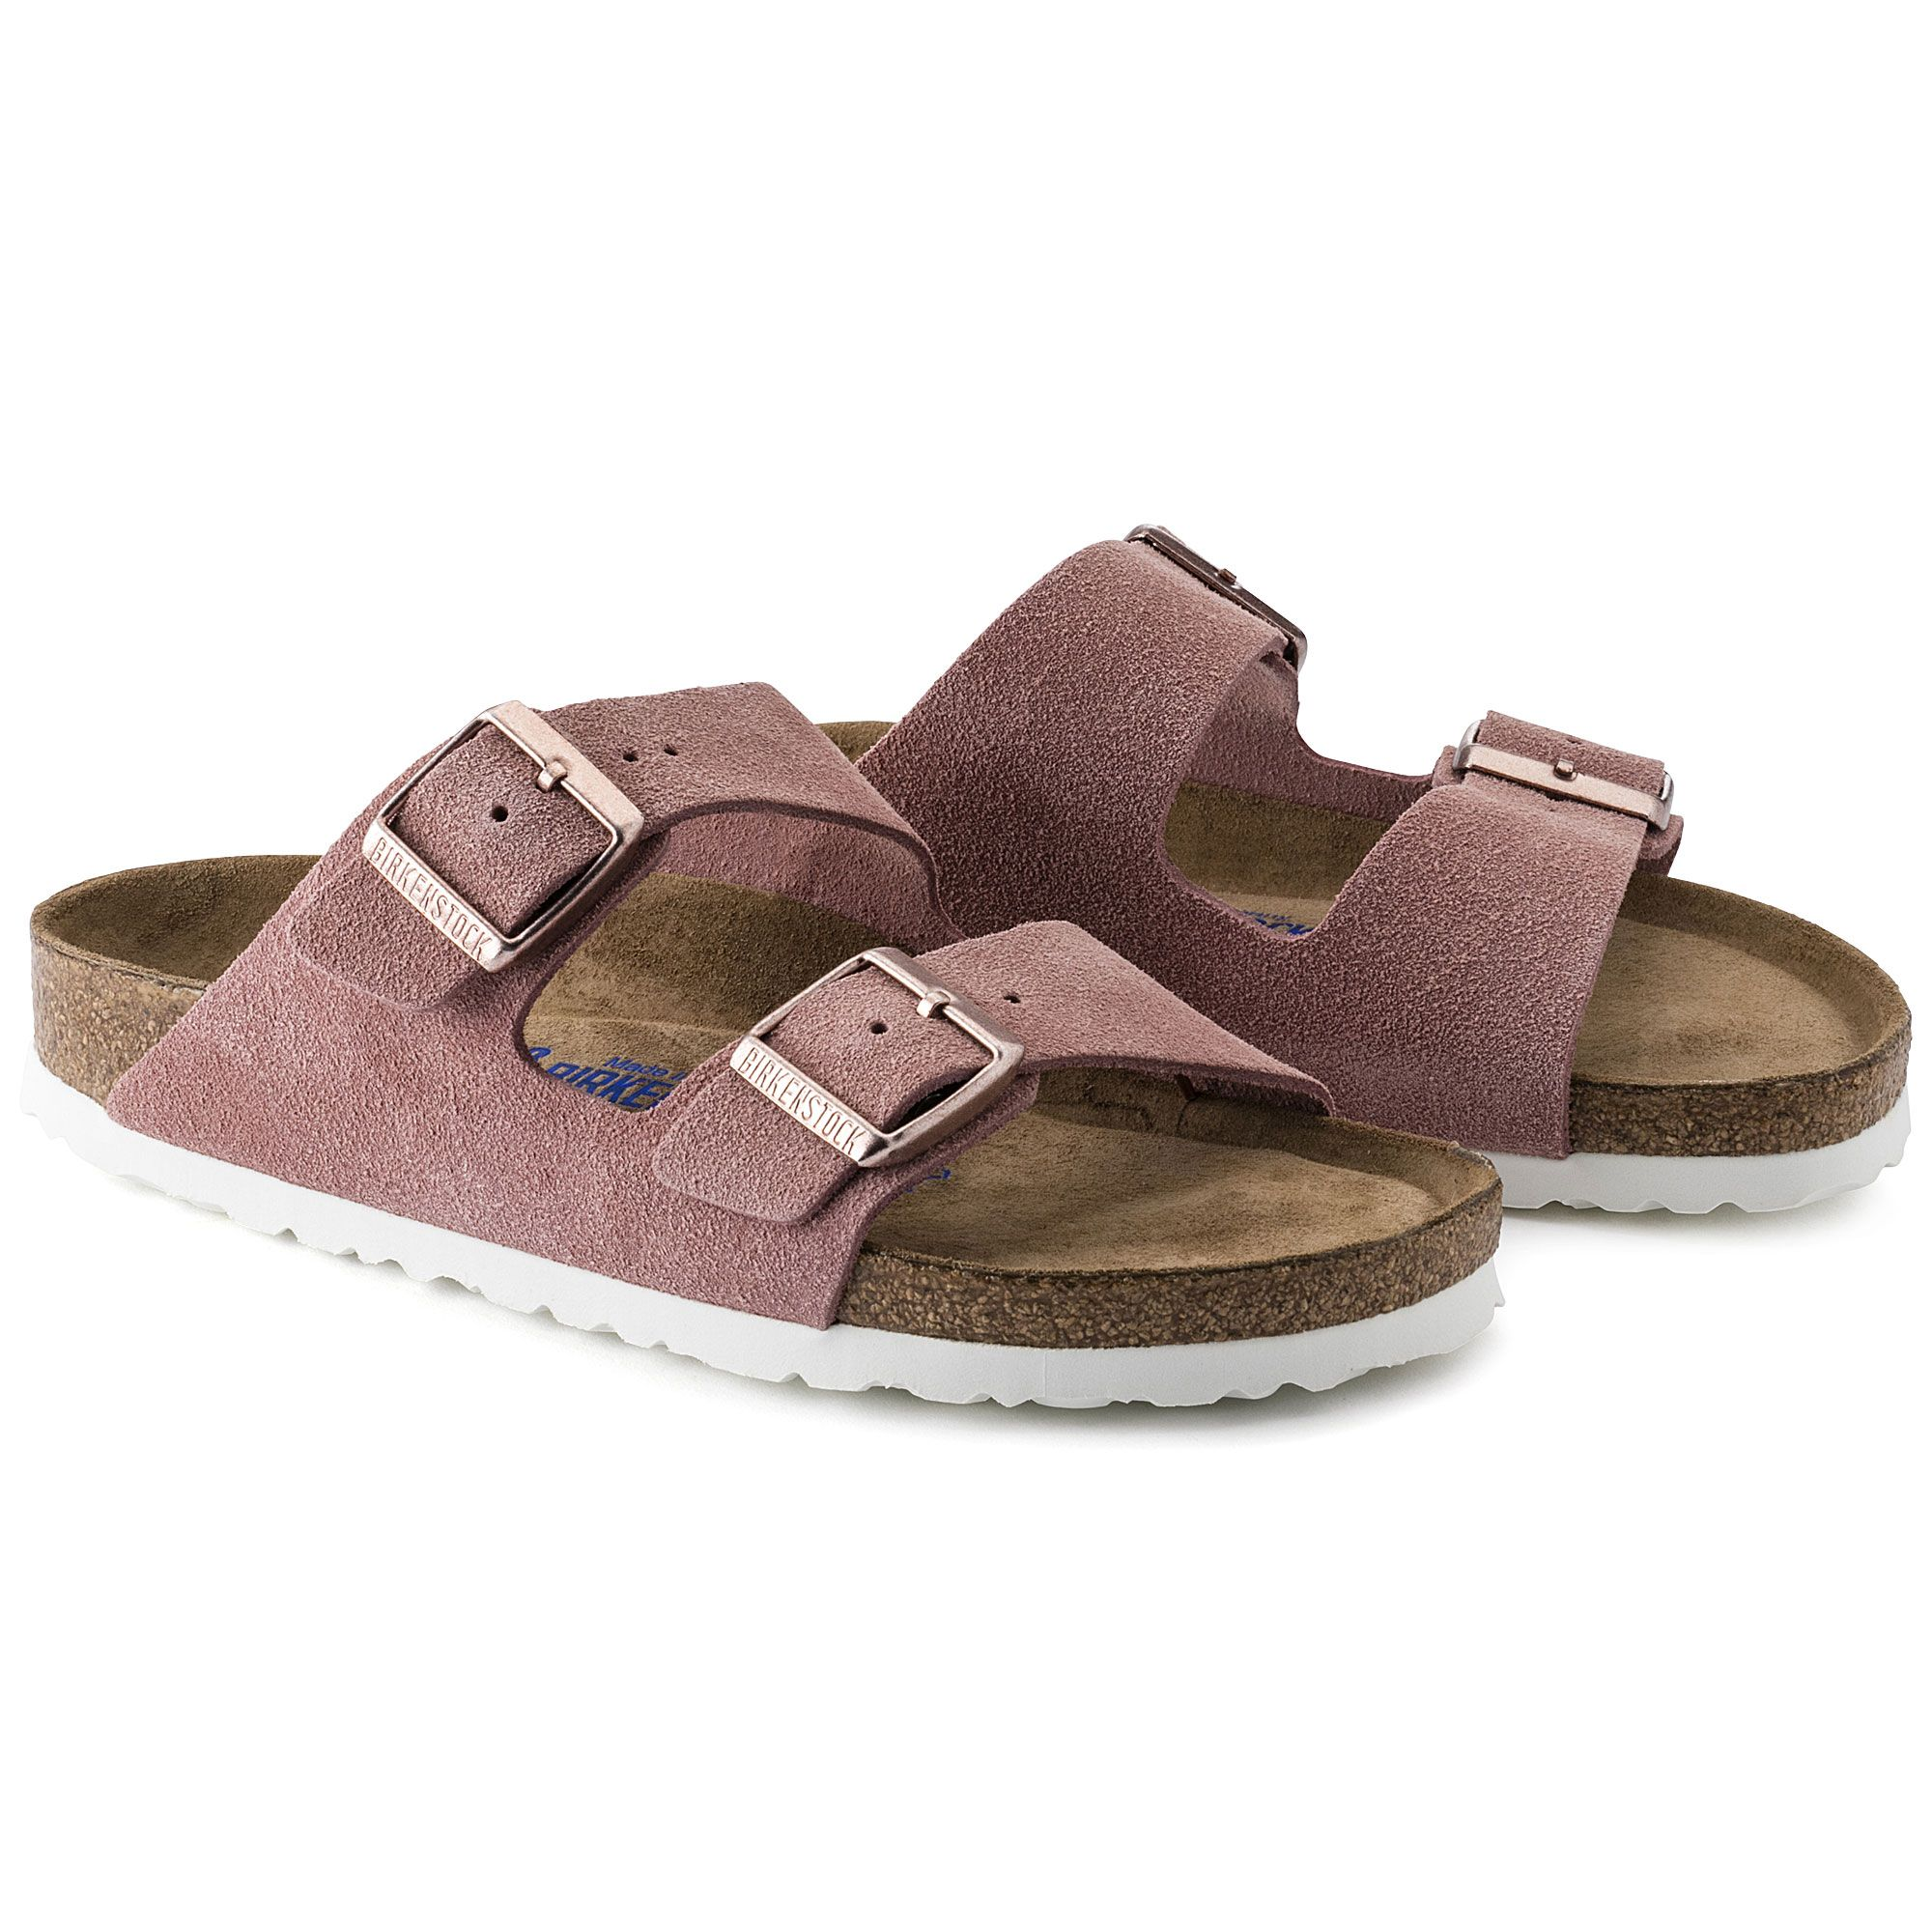 Arizona Cuir Soft Footbed WBirkenstock bTpVT